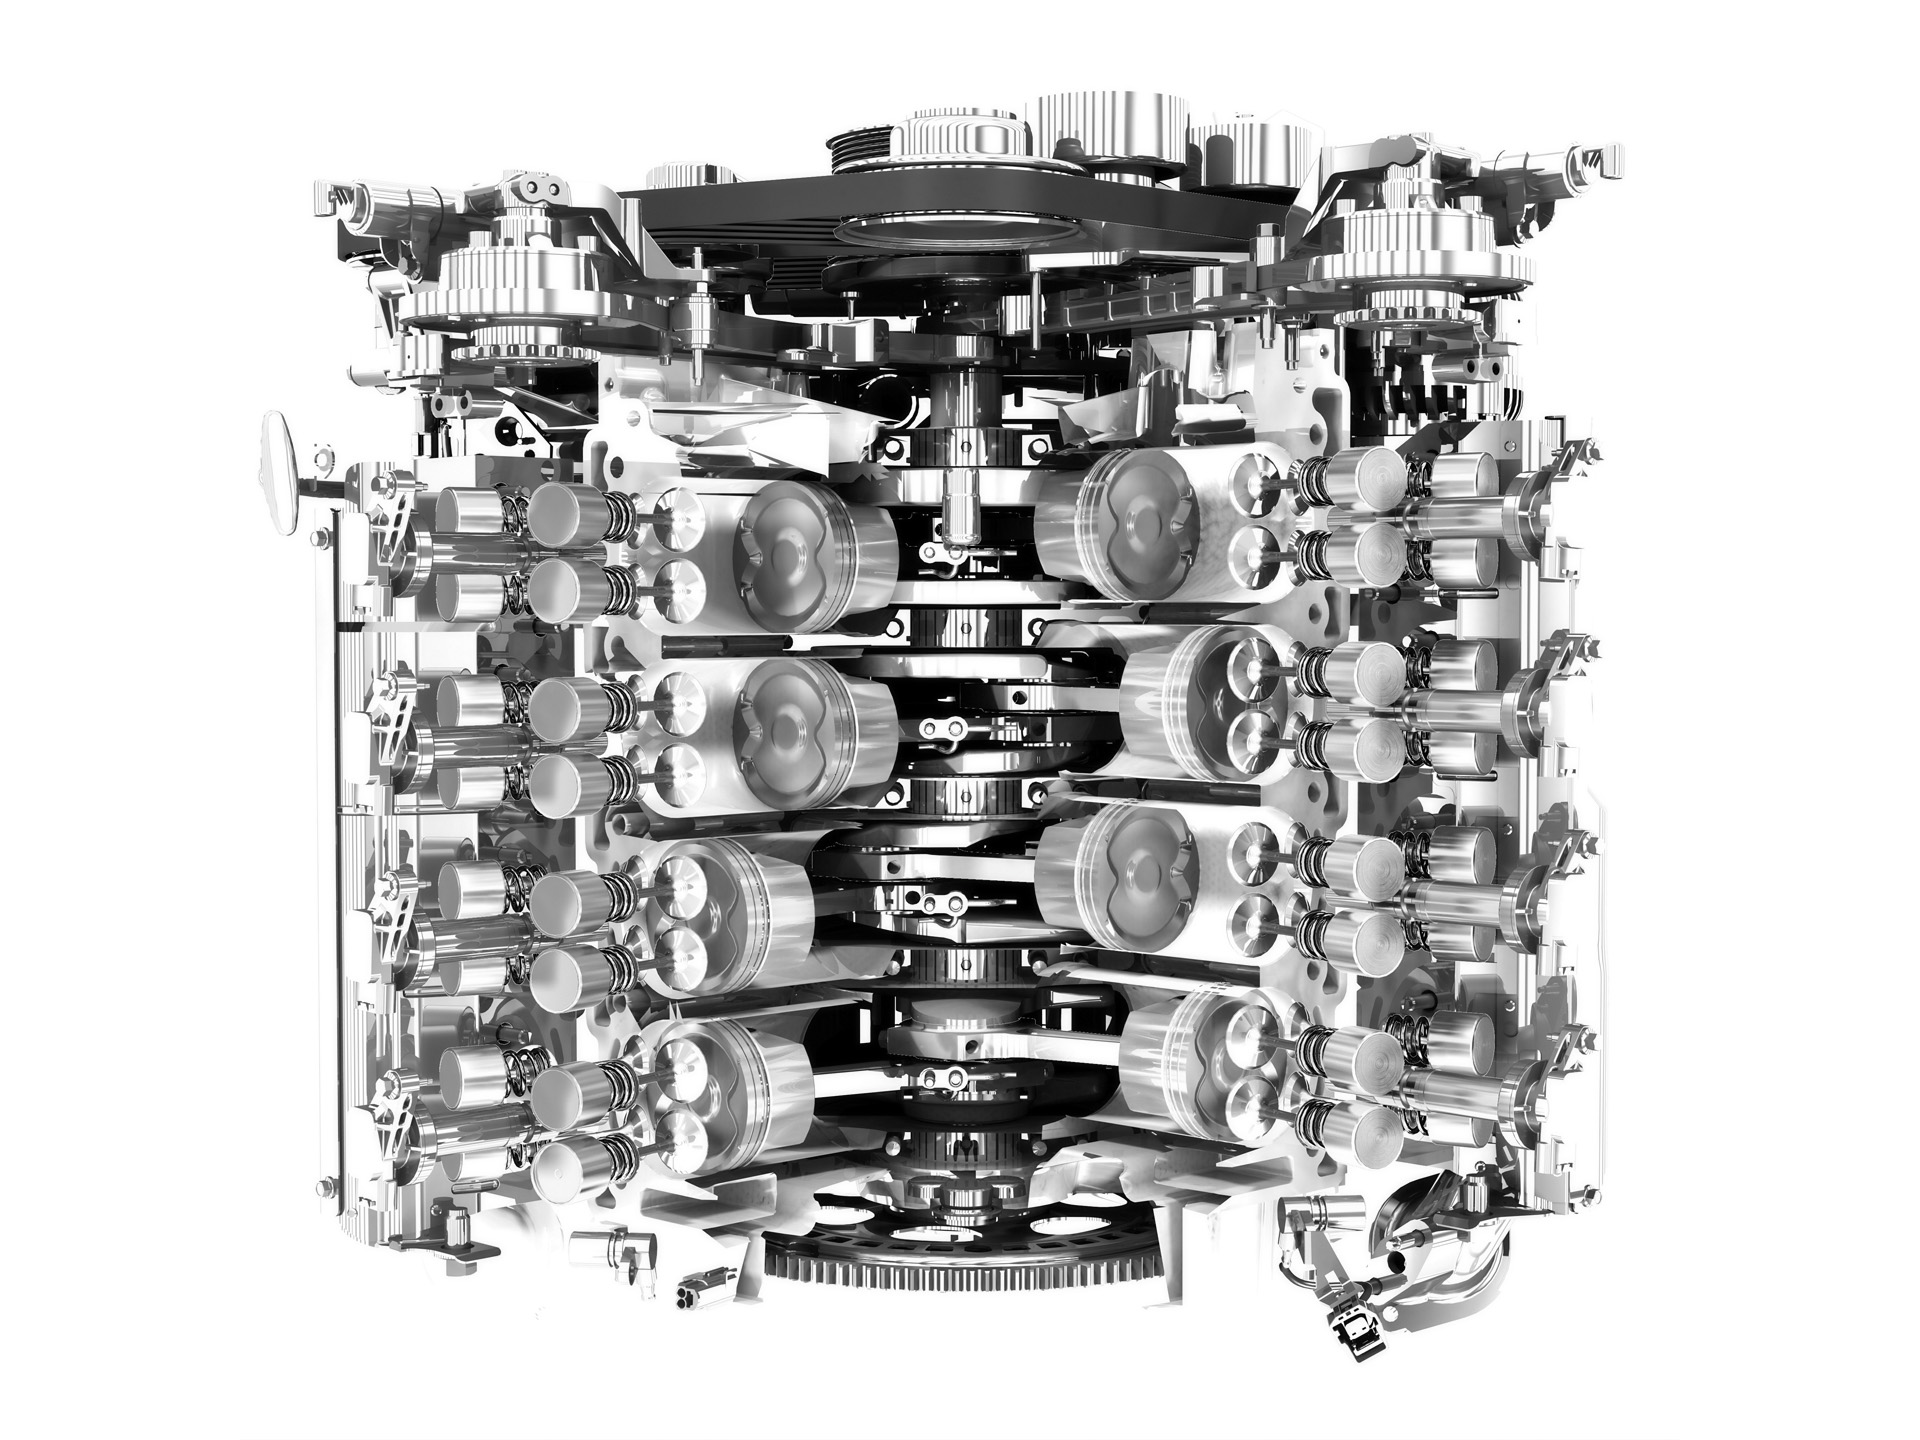 Sample P1543 Engine